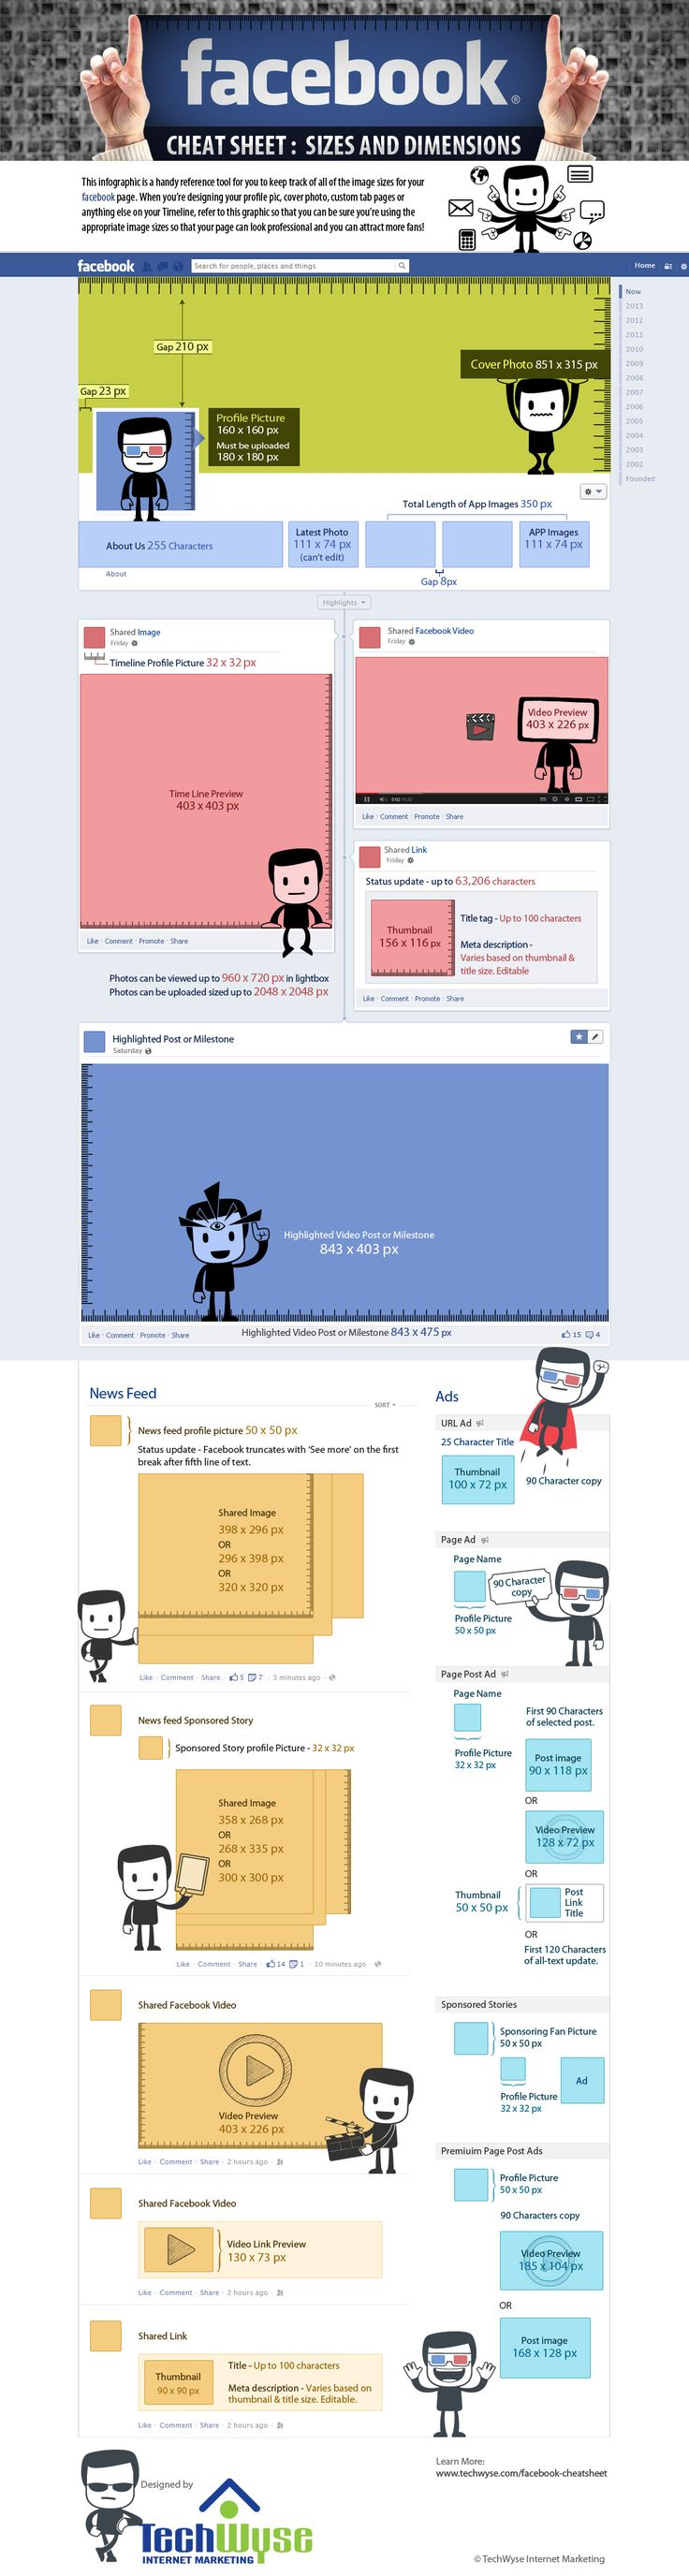 The Ultimate Facebook Cheat Sheet